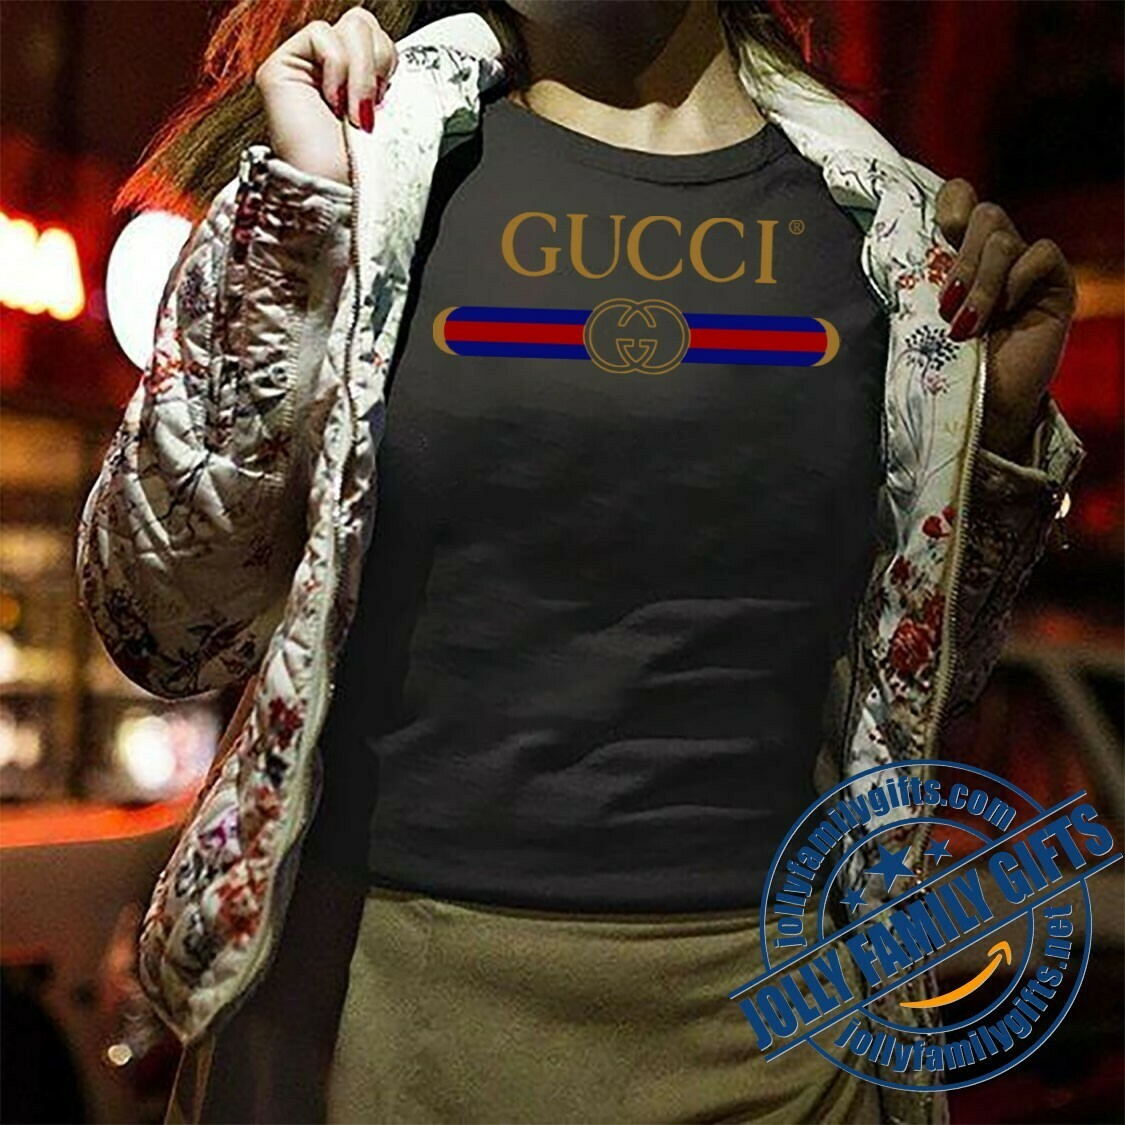 Logo Gucci,Gucci Shirt,Gucci T-shirt,Gucci Logo,Gucci Fashion shirt,Fashion shirt,Gucci Design shirt,Snake Gucci vintage shirt Unisex T-Shirt Hoodie Sweatshirt Sweater for Ladies Women Men Kids Youth